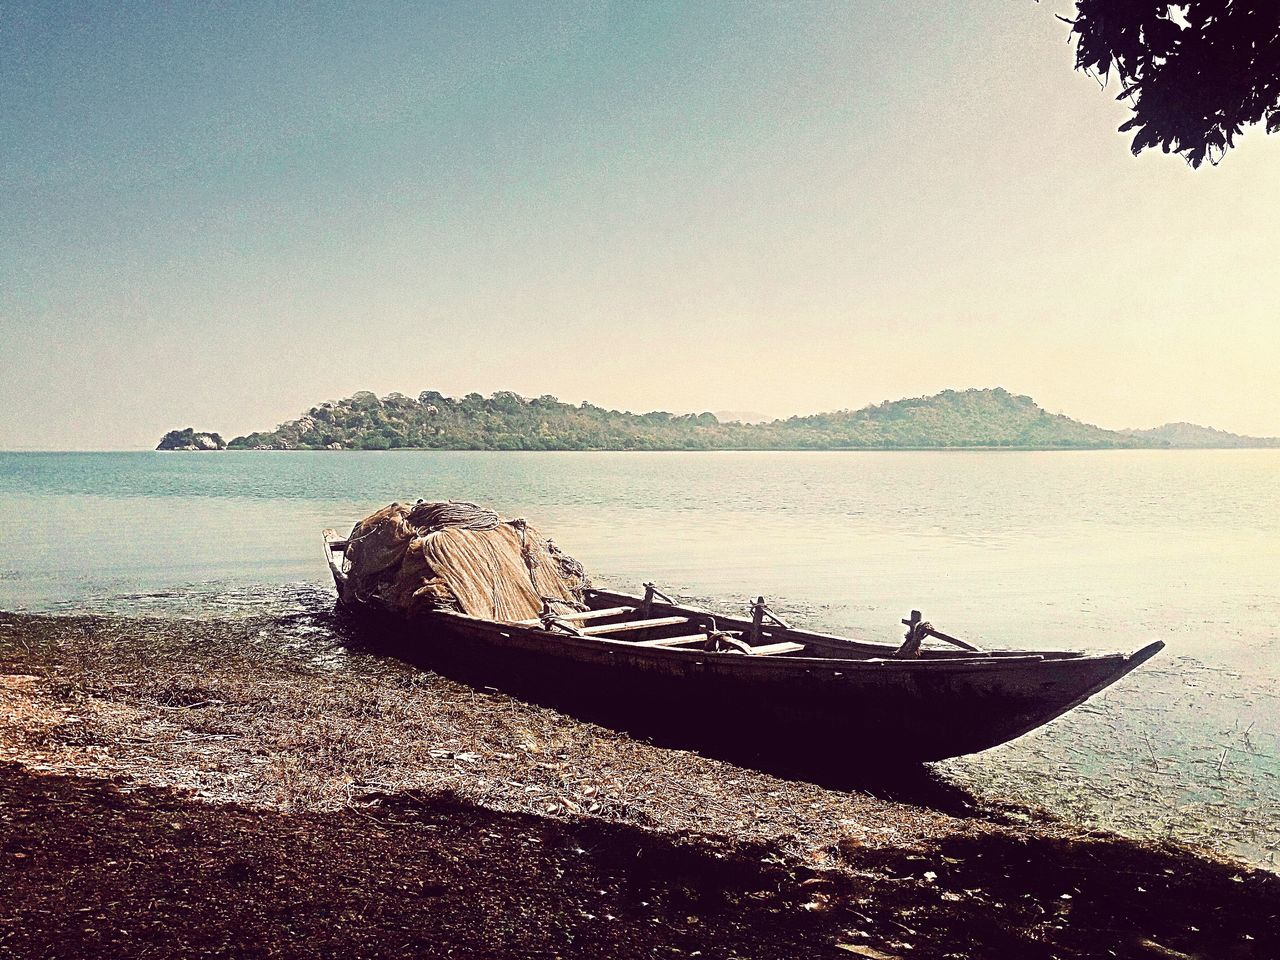 water, nature, tranquility, nautical vessel, sea, tranquil scene, scenics, beauty in nature, beach, outdoors, clear sky, no people, sky, moored, day, horizon over water, tree